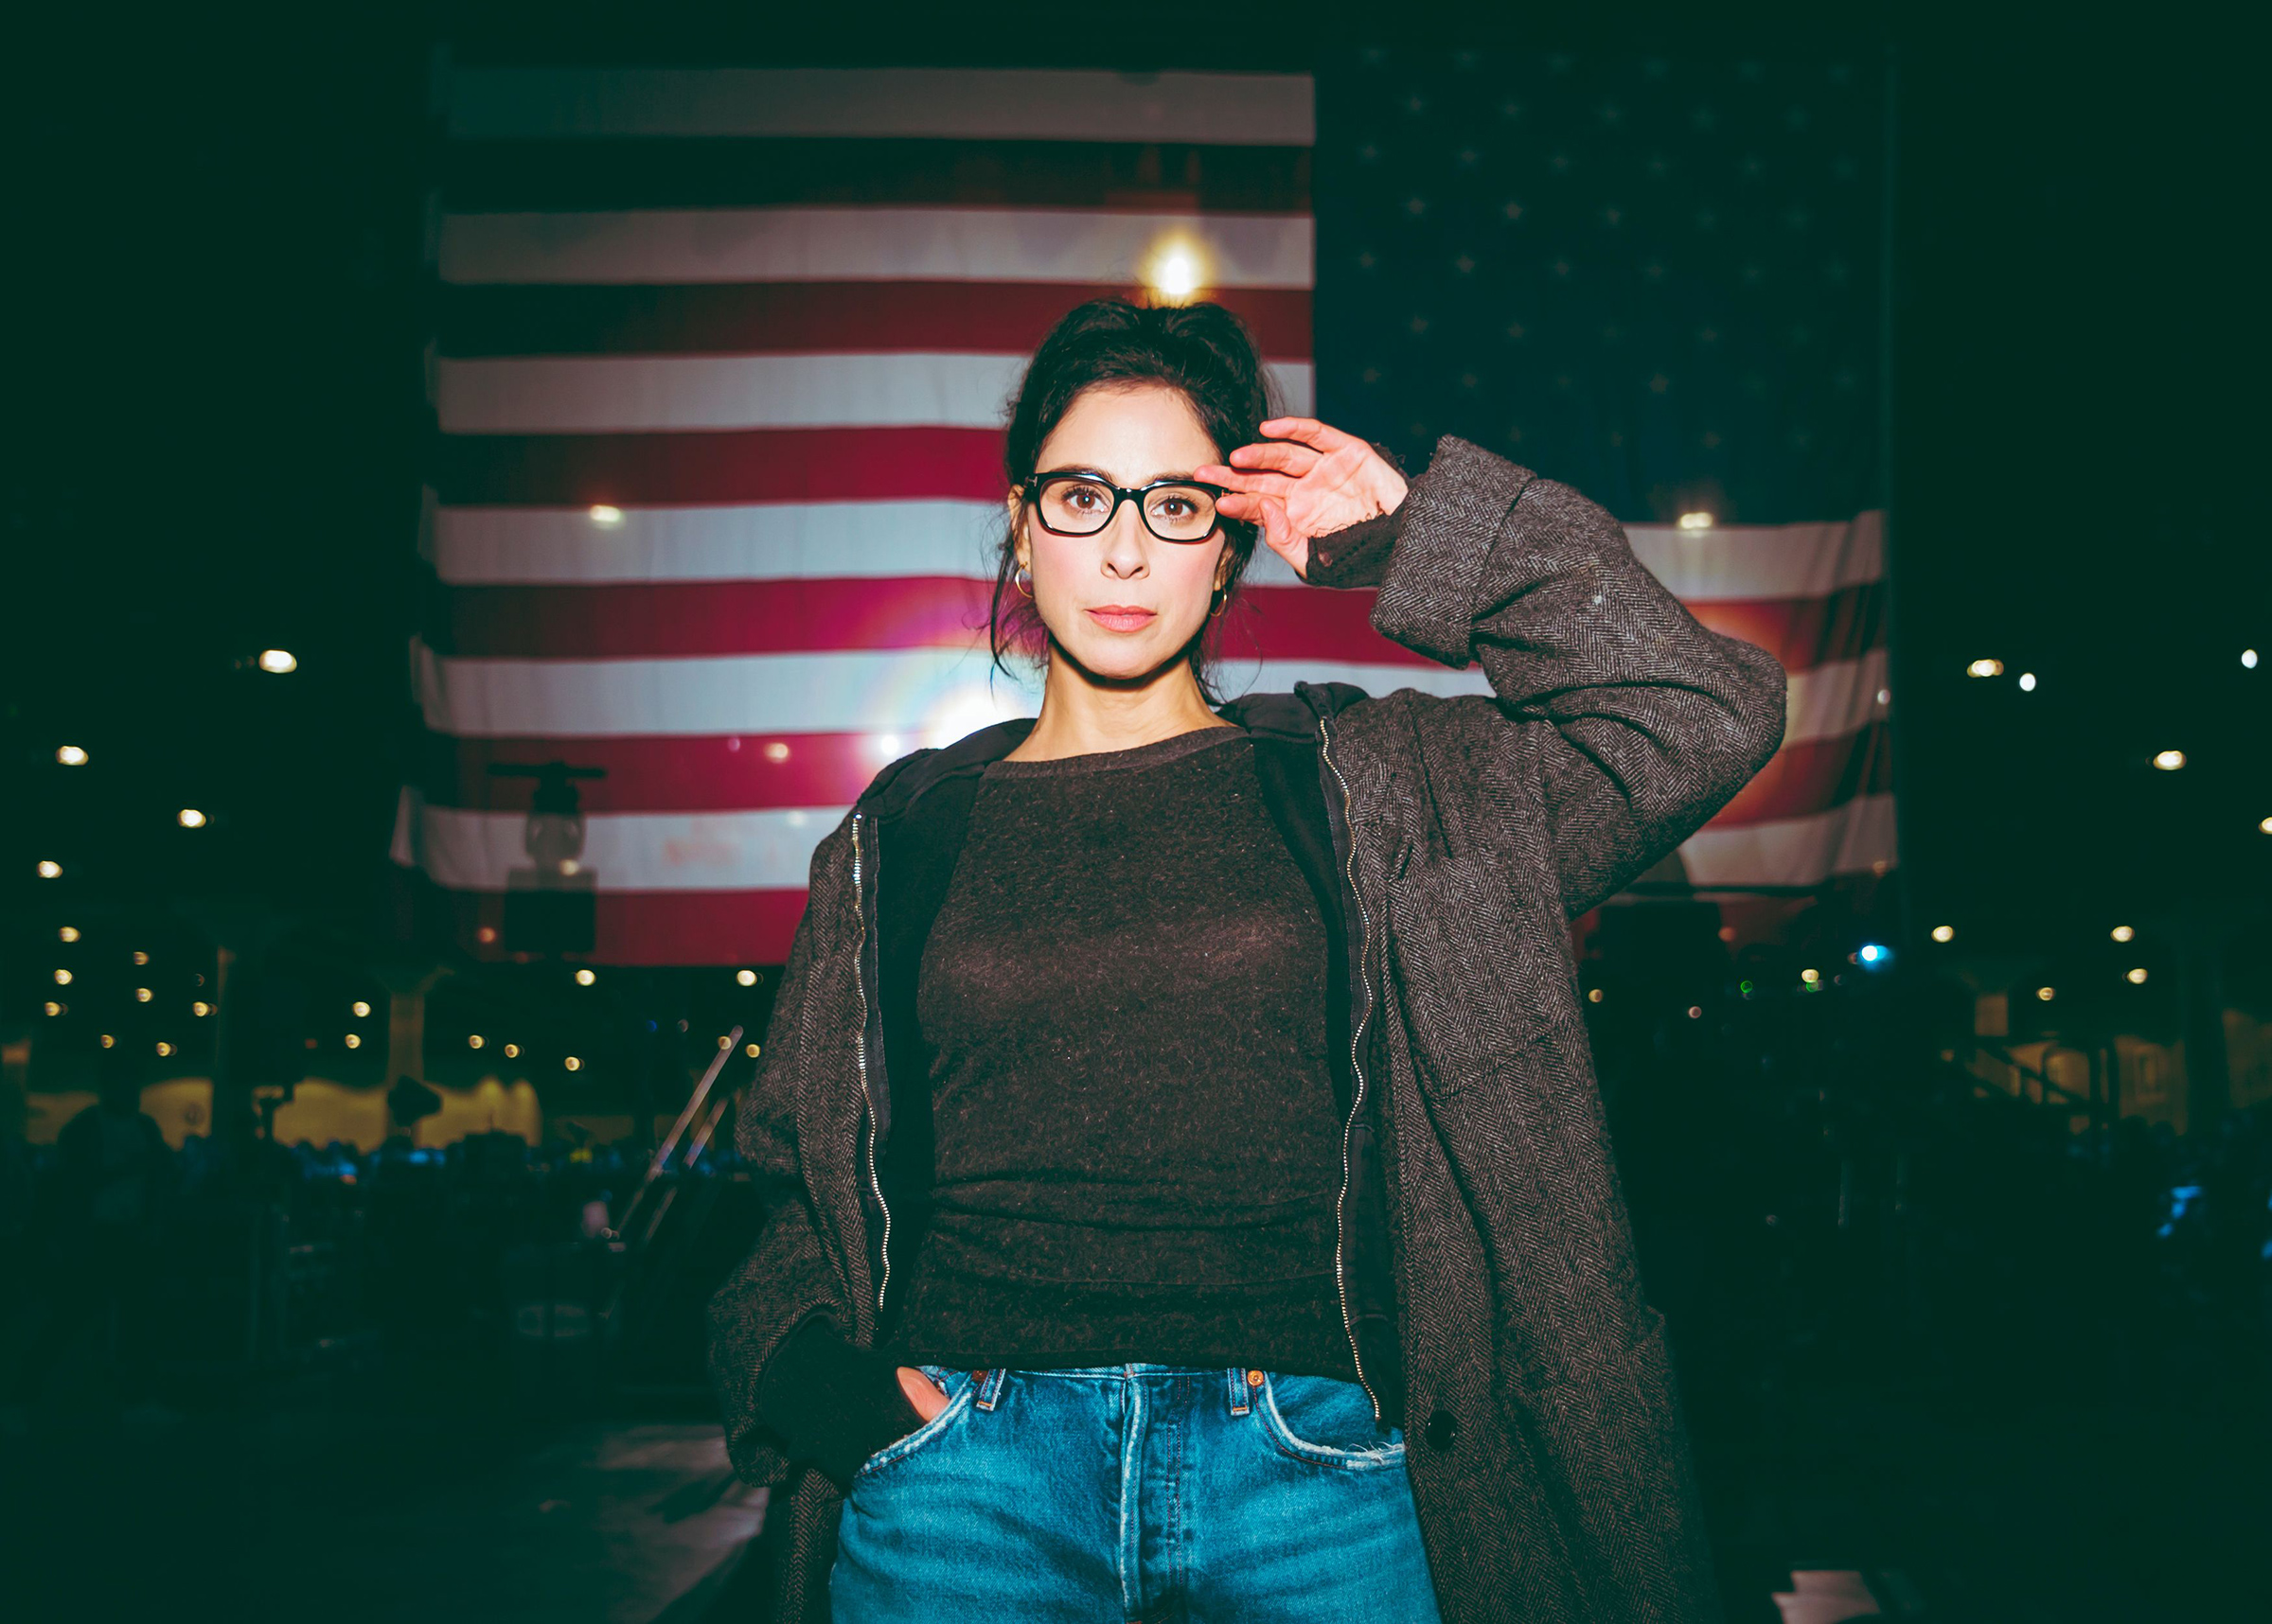 Sarah Silverman poses for a photo backstage at a Bernie Sanders Rally at Los Angeles Convention Center on March 1